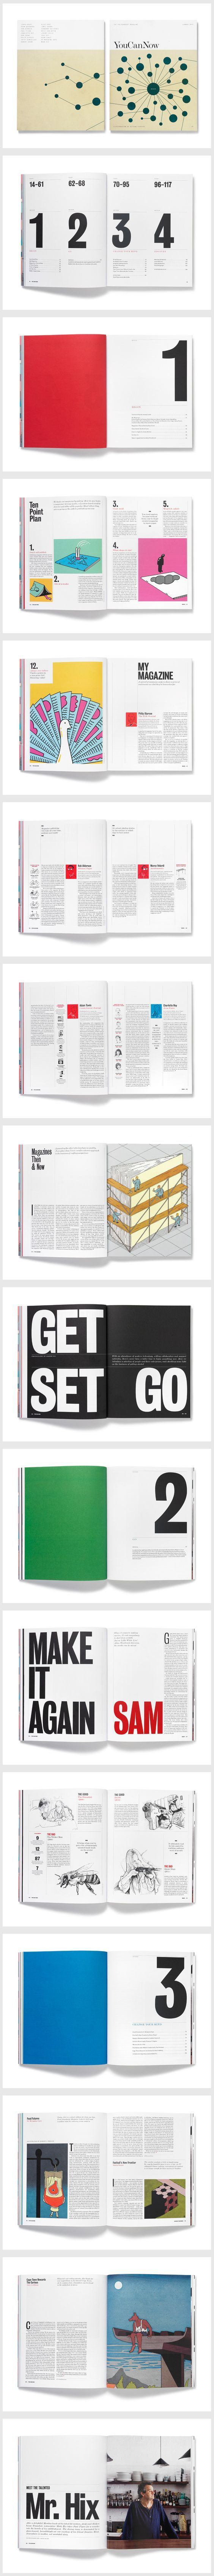 print (book, magazine, newspaper, brochure) + typography + editorial + layout + design |: